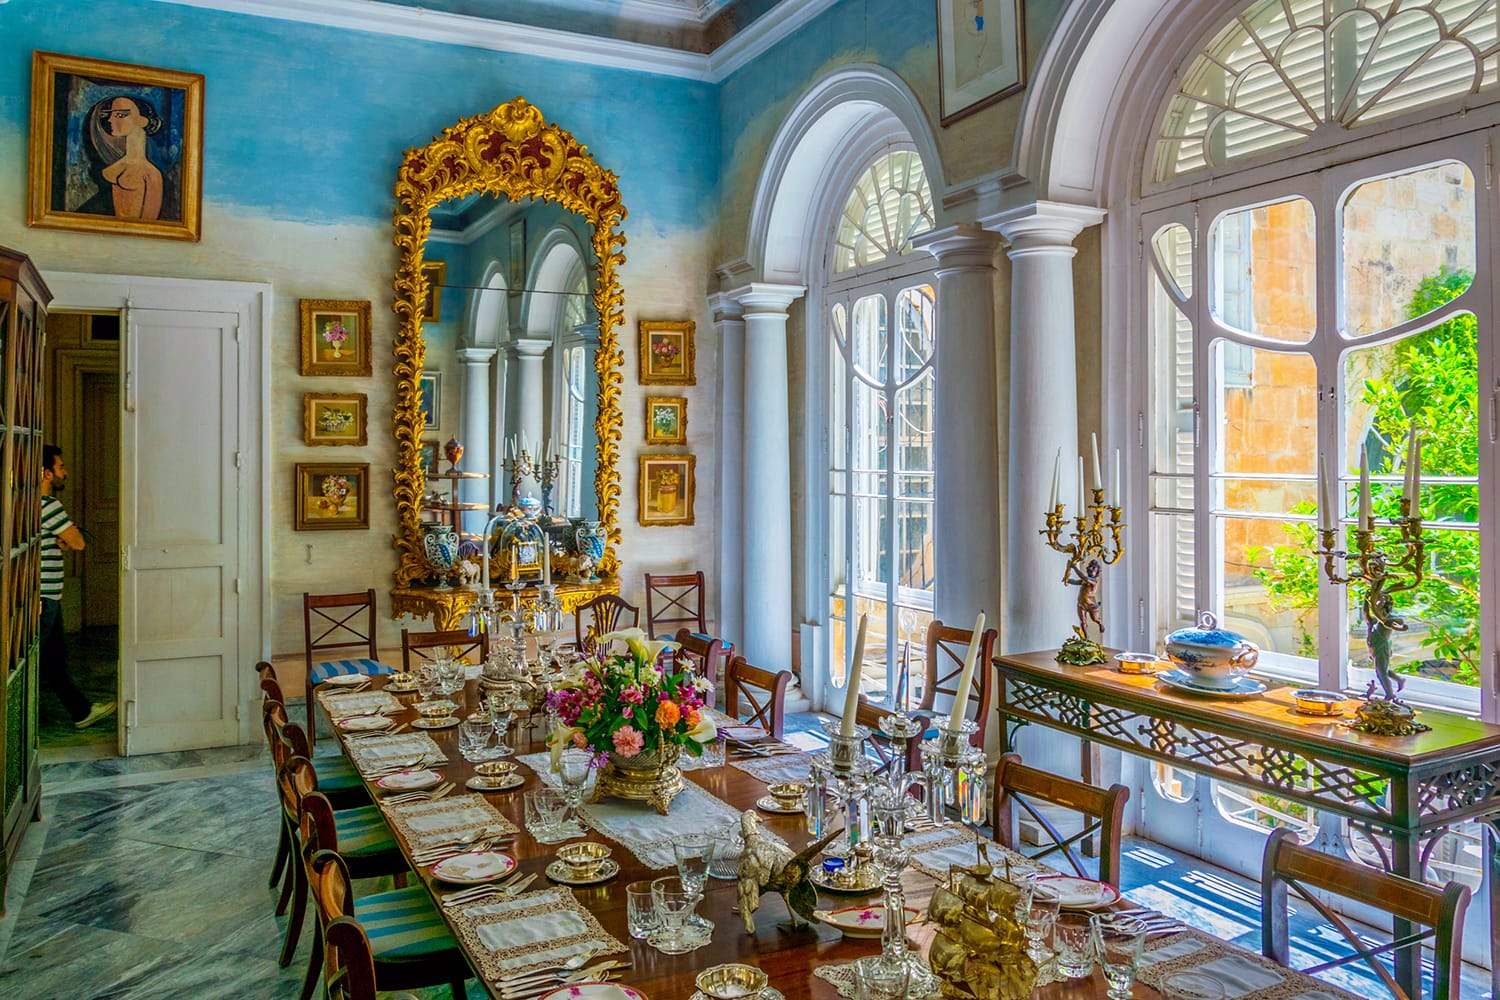 Dinning room in the Casa Rocca Piccola in Valletta, Malta